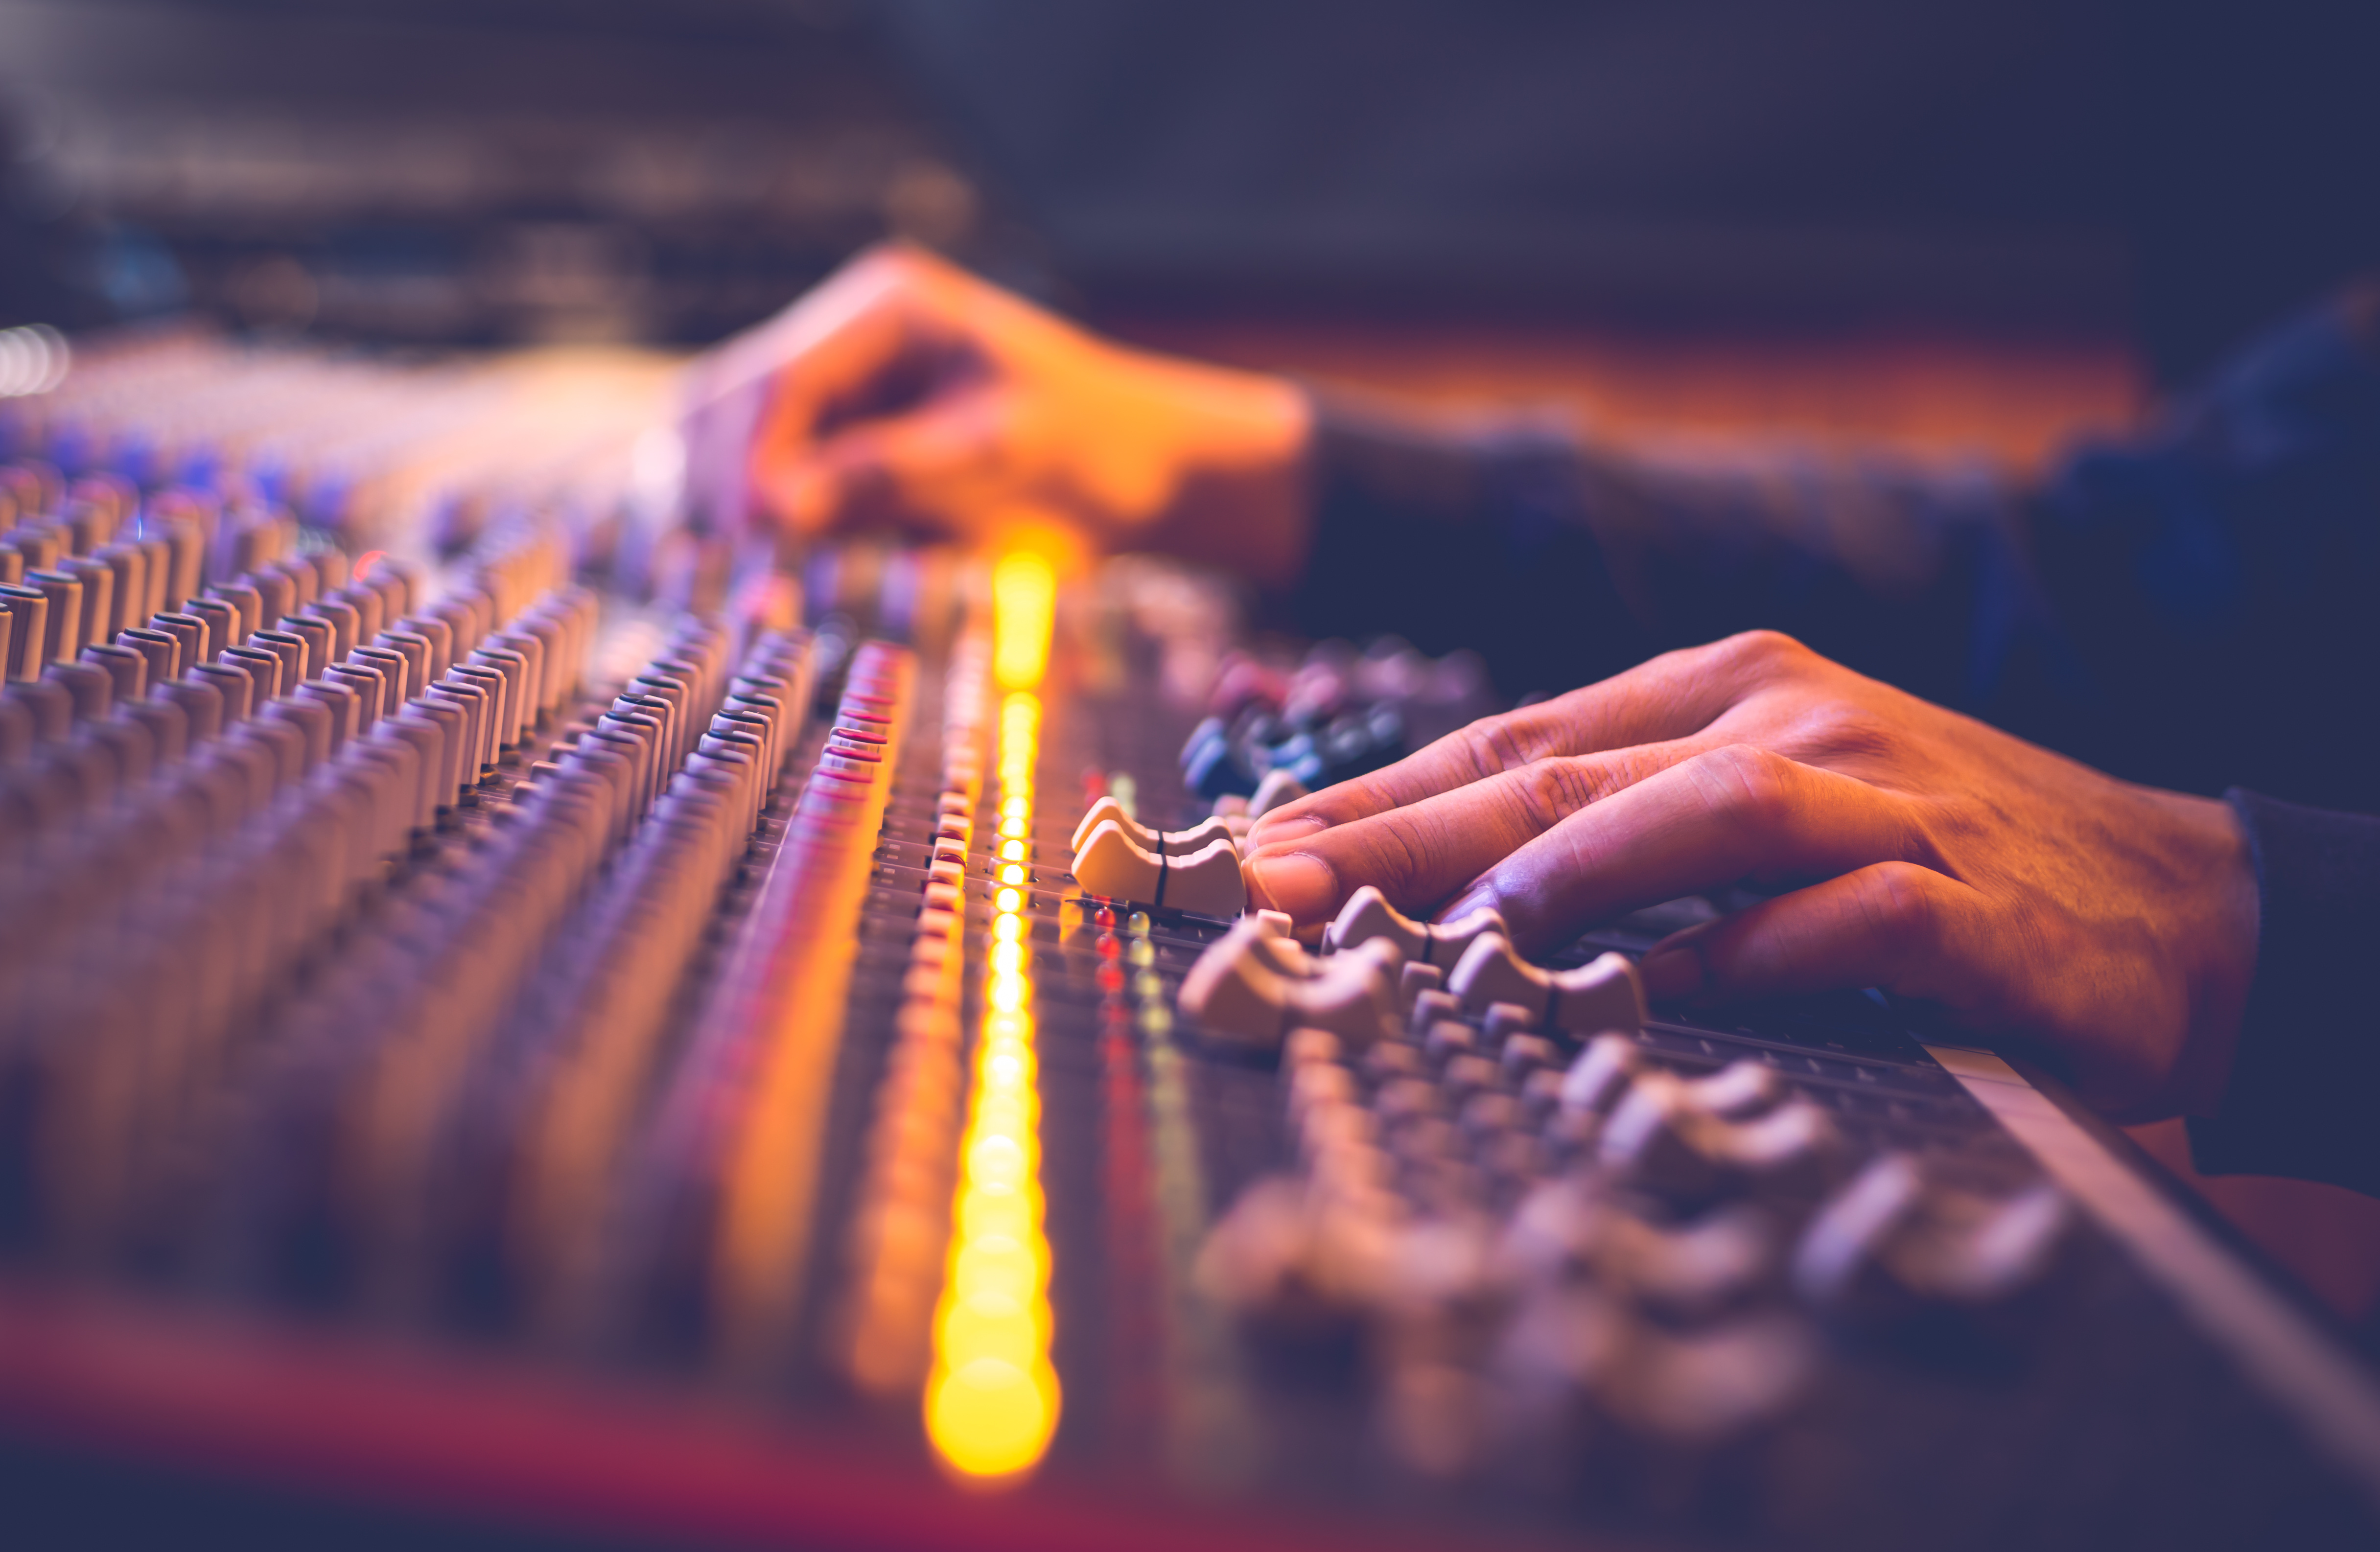 Two hands on a mixing console, sliding levers around during production.